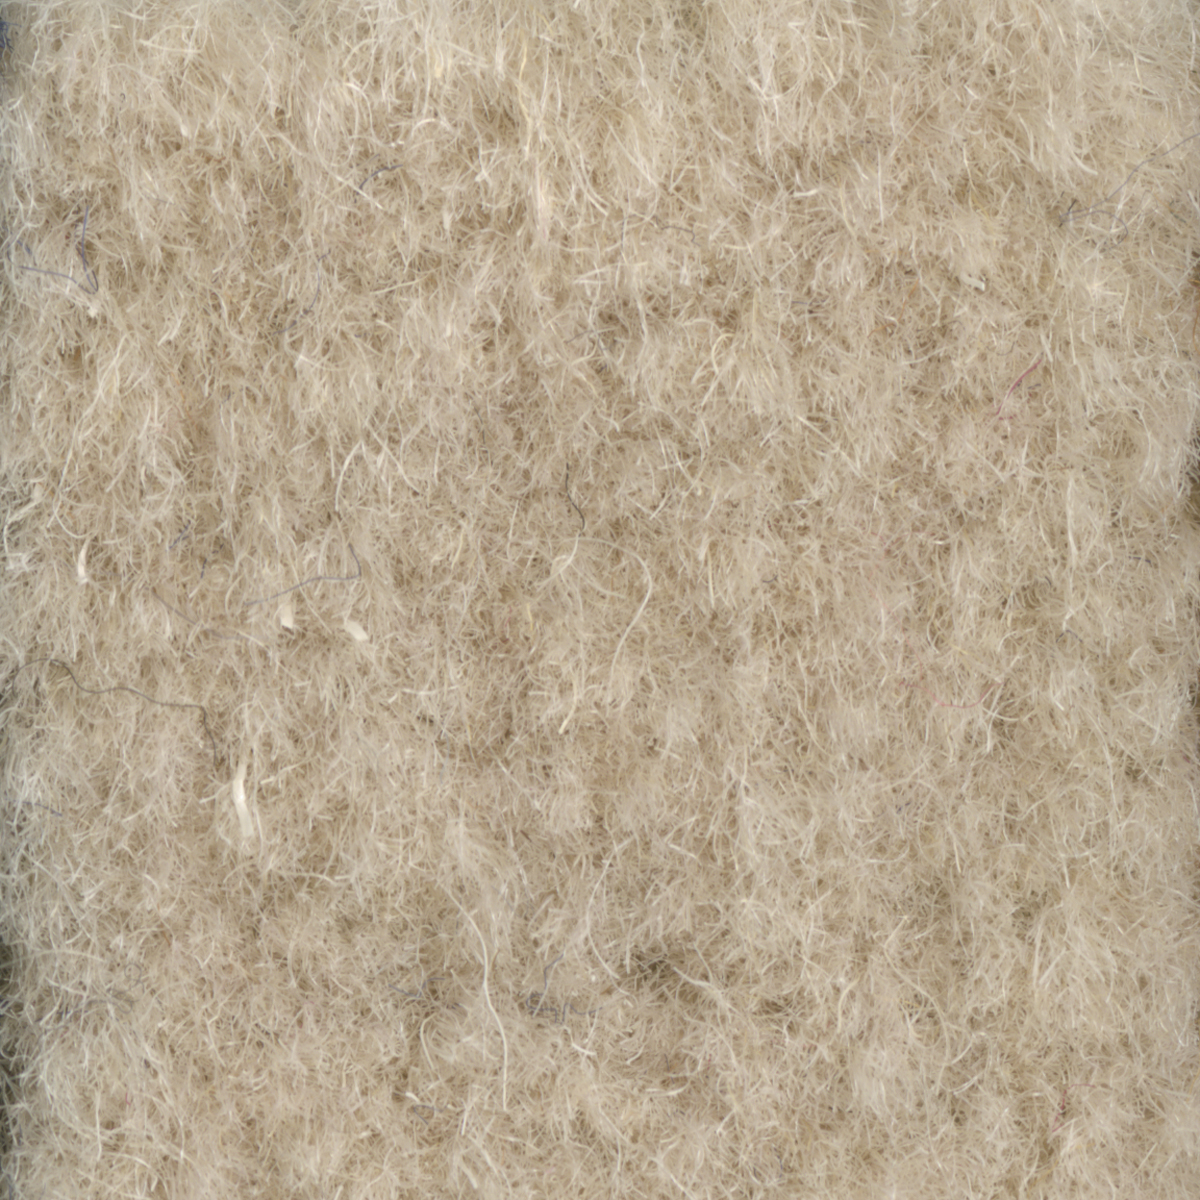 BEIGE ENGLISH WILTON II WOOL CARPET